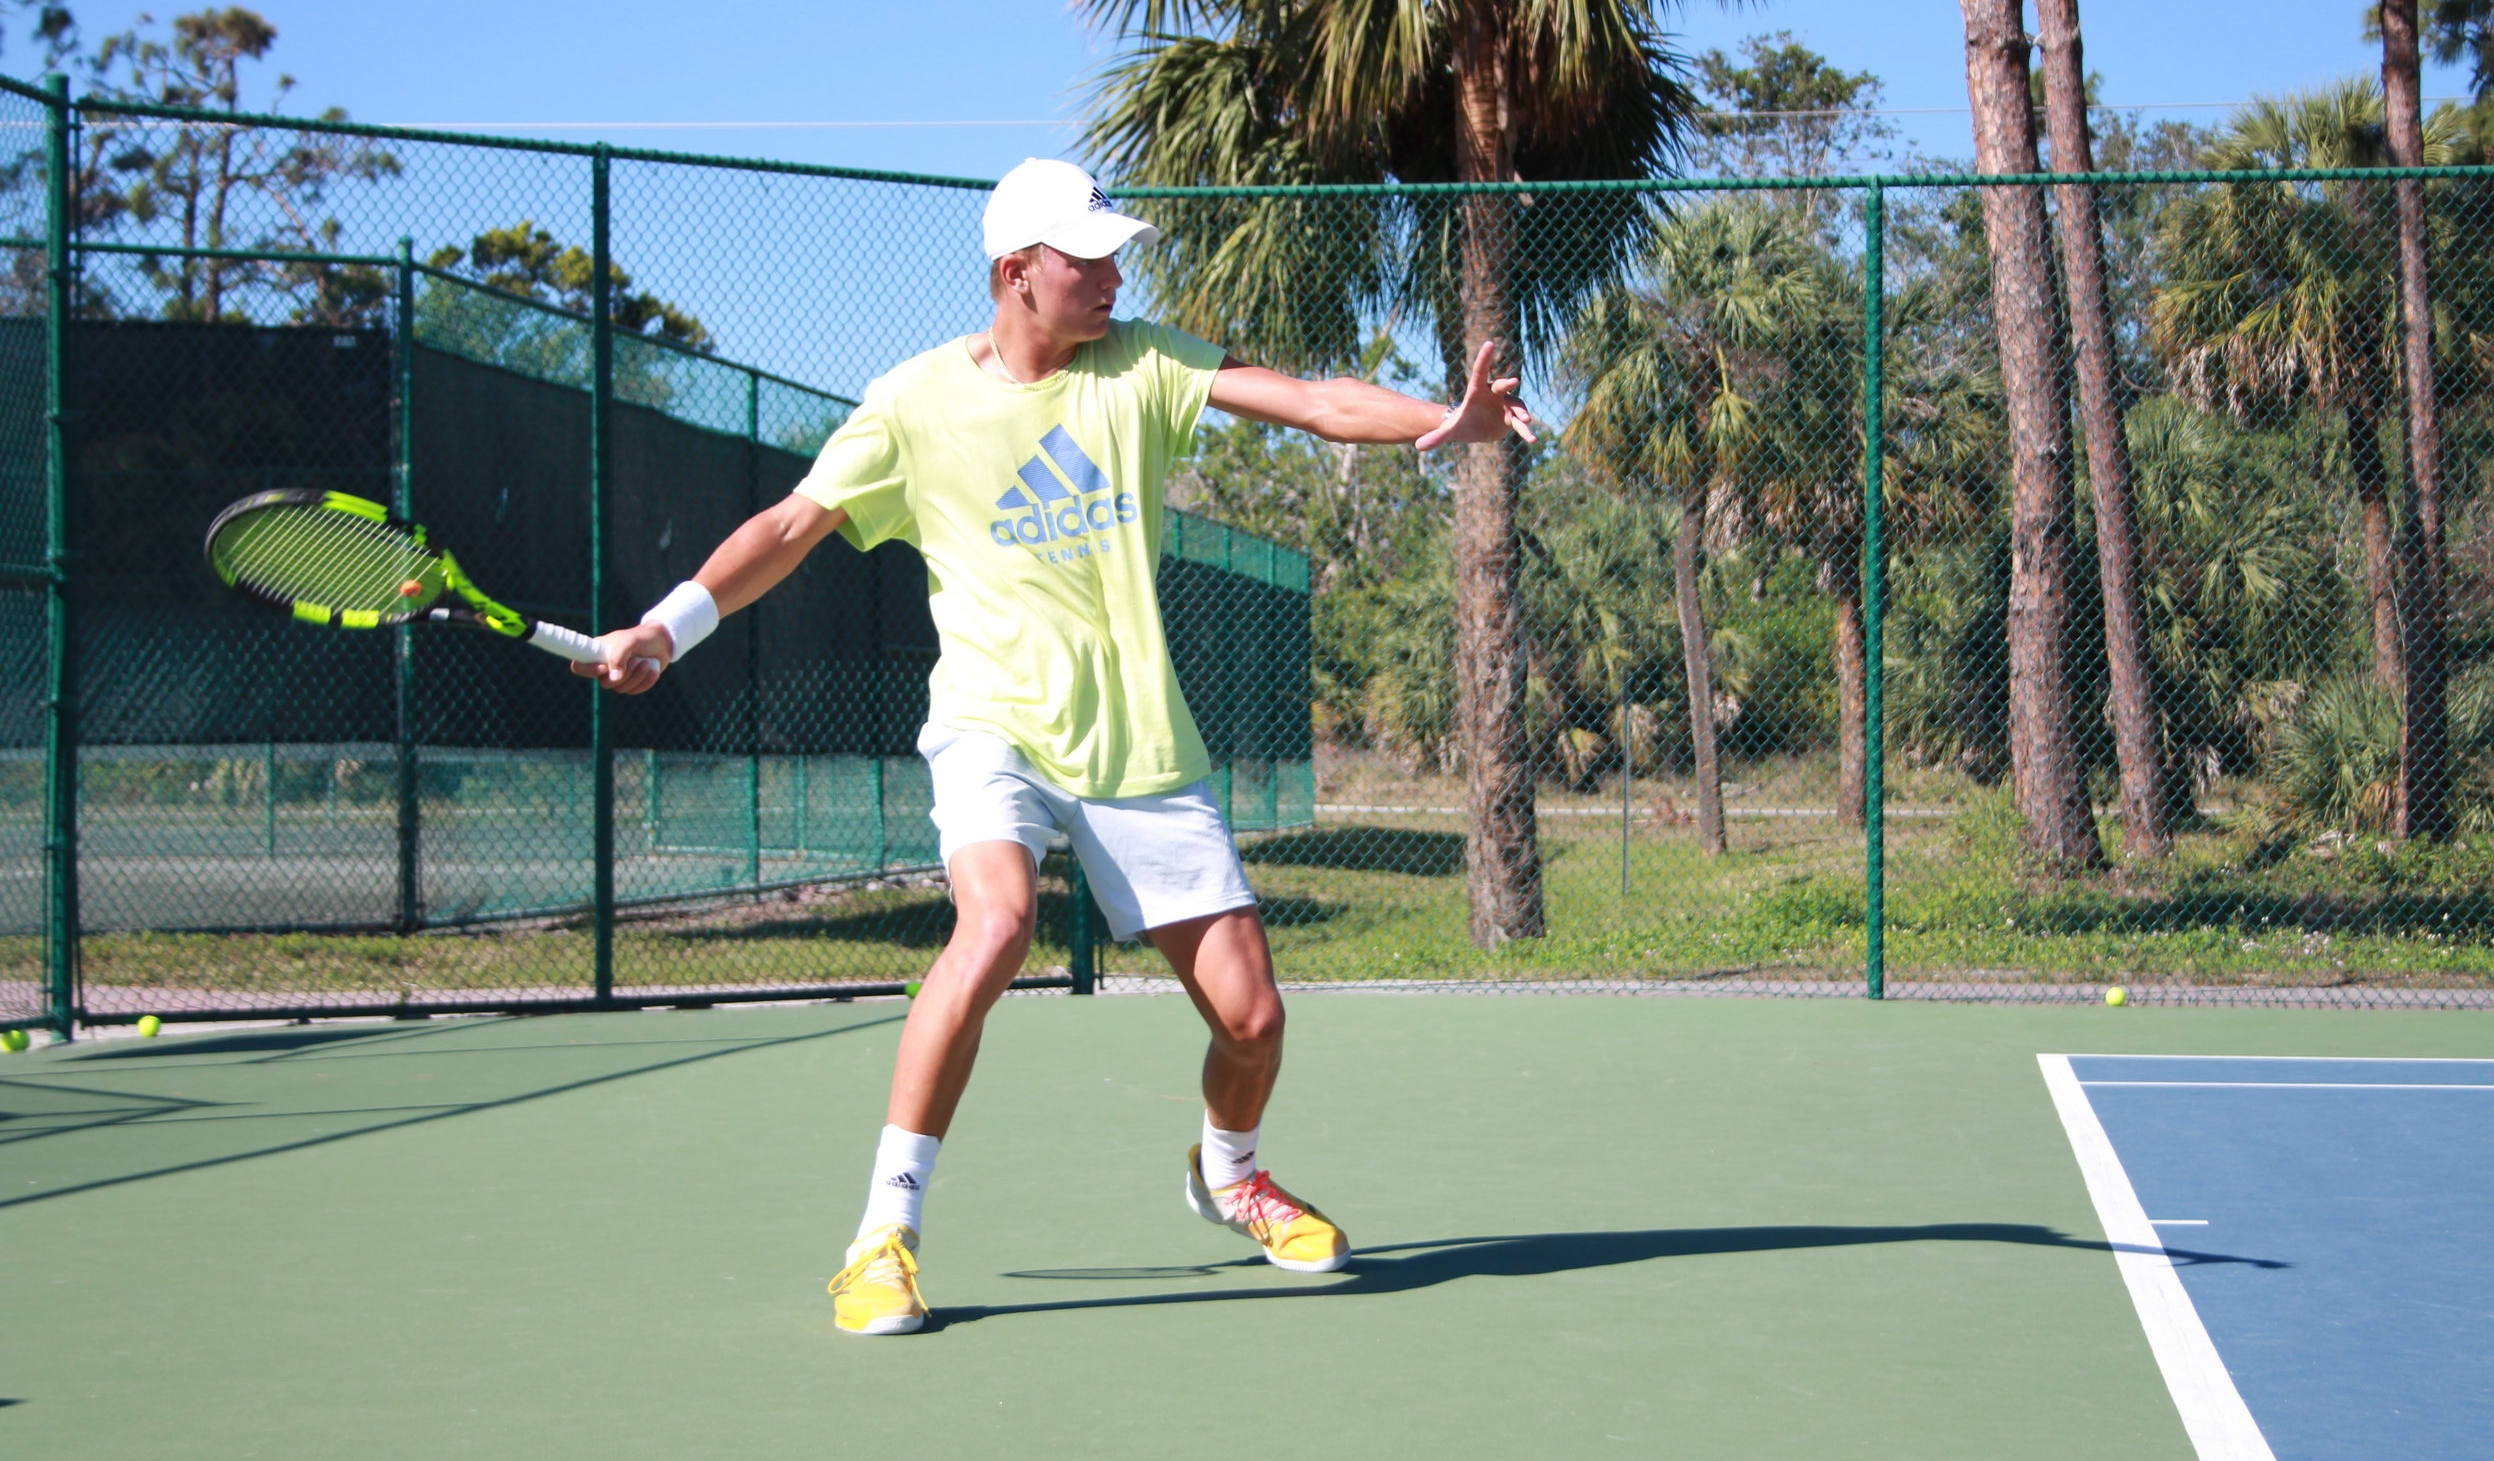 FULL-TIME ACADEMY - Our Academy trains year round, six days per week with 38 hours of combined tennis and fitness training each week